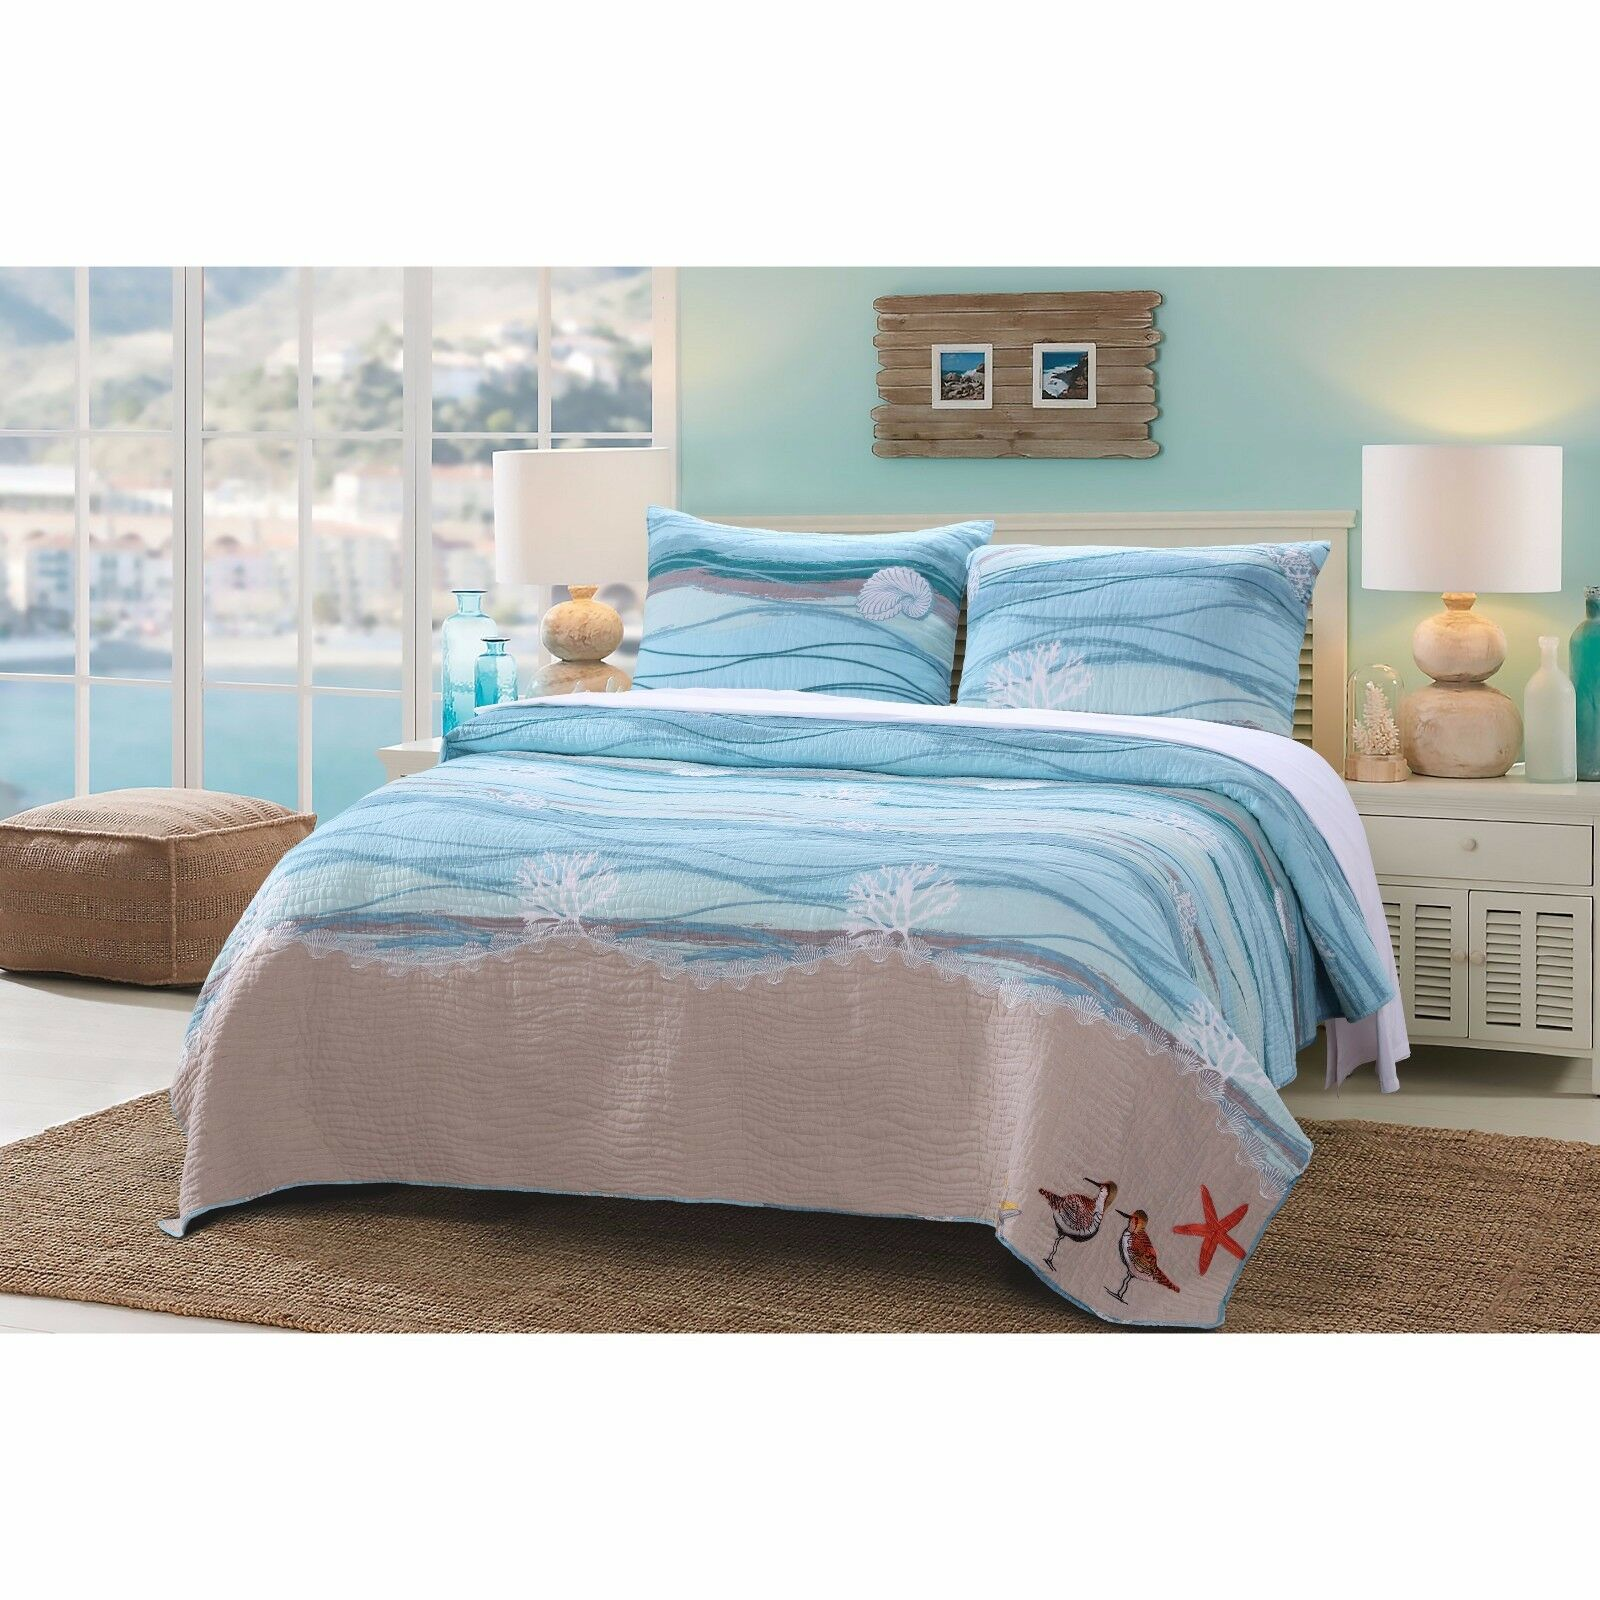 BEAUTIFUL BEACH Blau AQUA TEAL grau SEASHELL NAUTICAL WAVE OCEAN CORAL QUILT SET